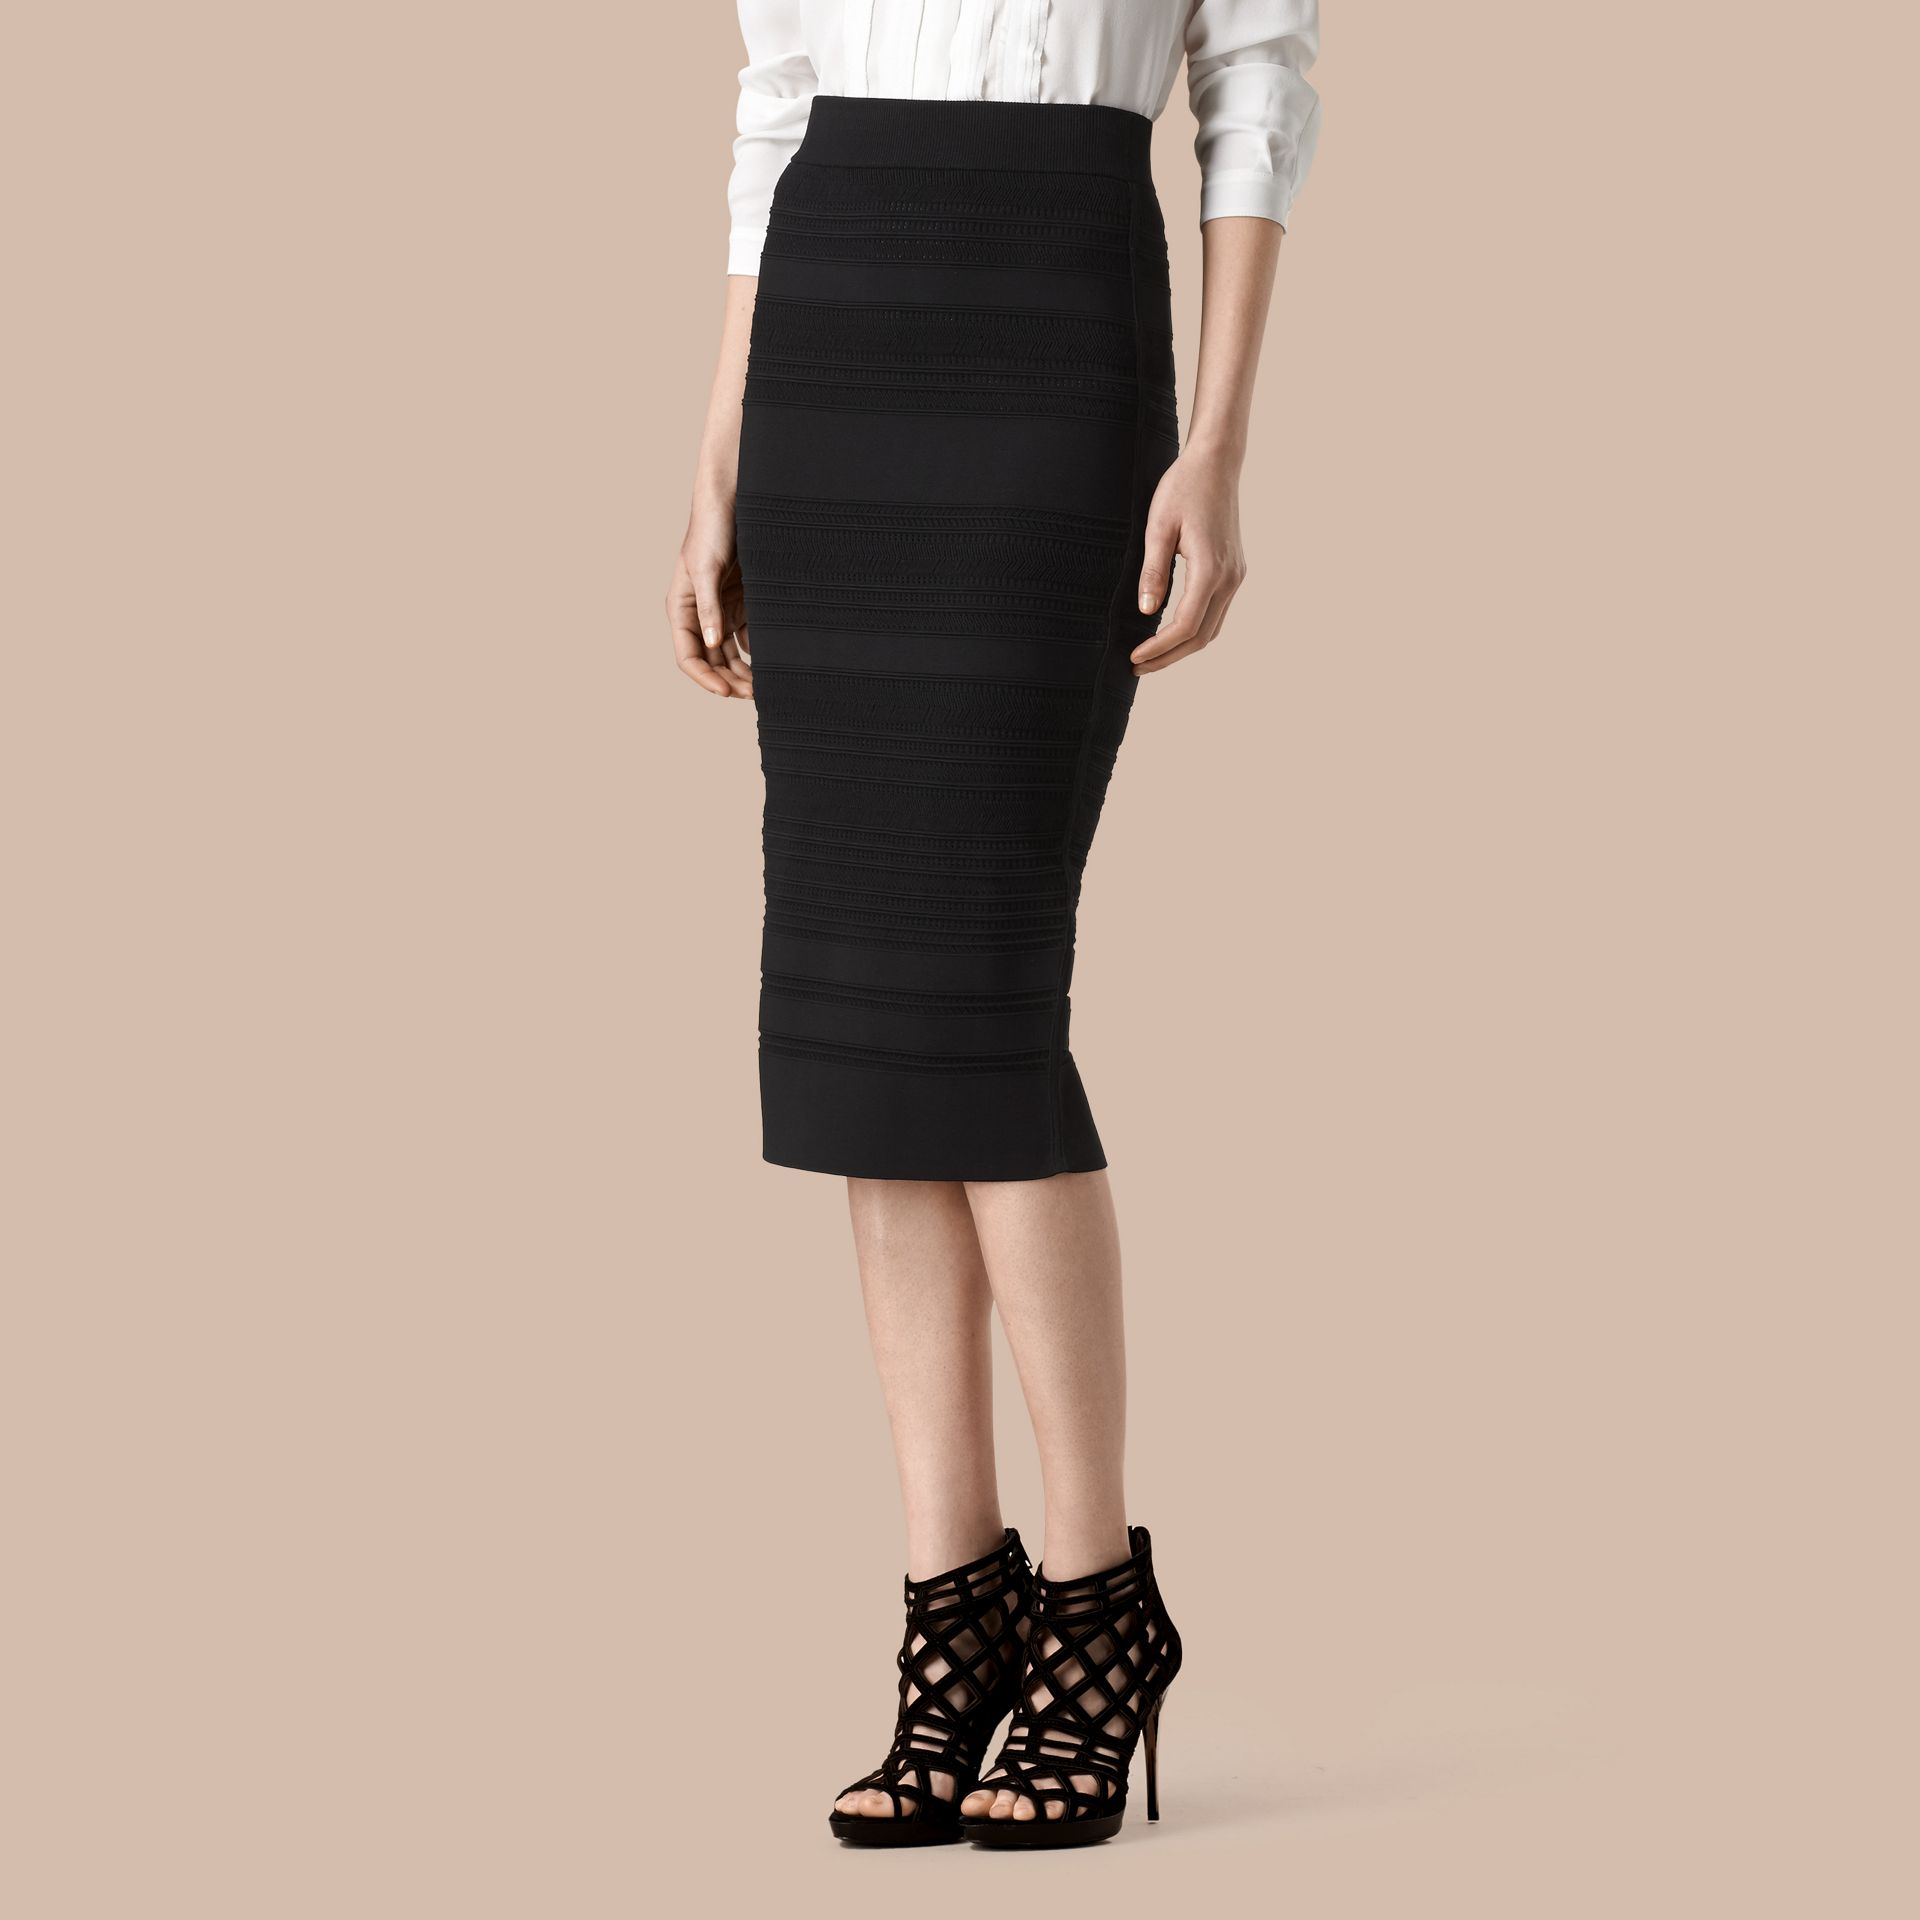 Black Striped Knitted Pencil Skirt - gallery image 1